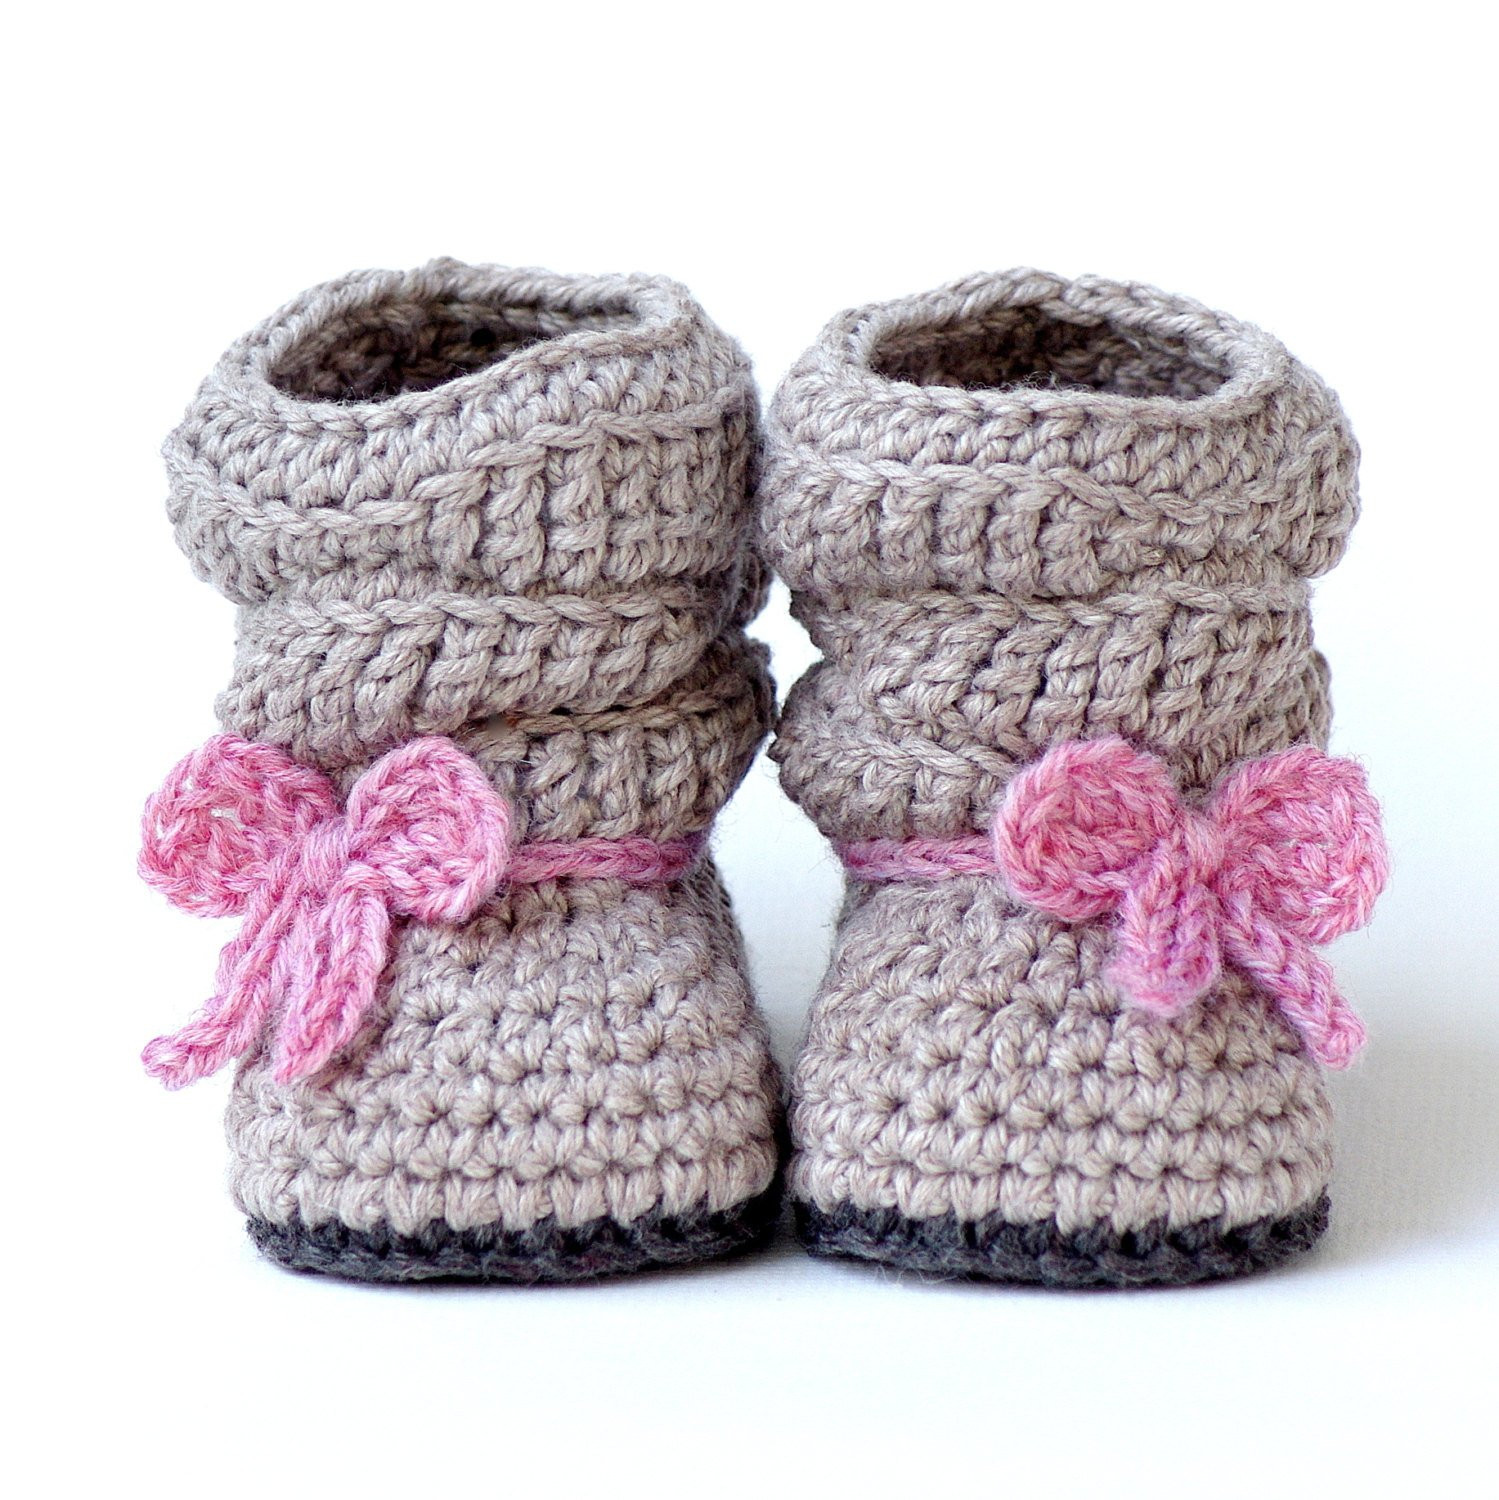 Baby Booties Crochet Pattern Luxury Crochet Pattern 217 Baby Slouch Boot Mia Boot Instant Of Top 49 Pictures Baby Booties Crochet Pattern